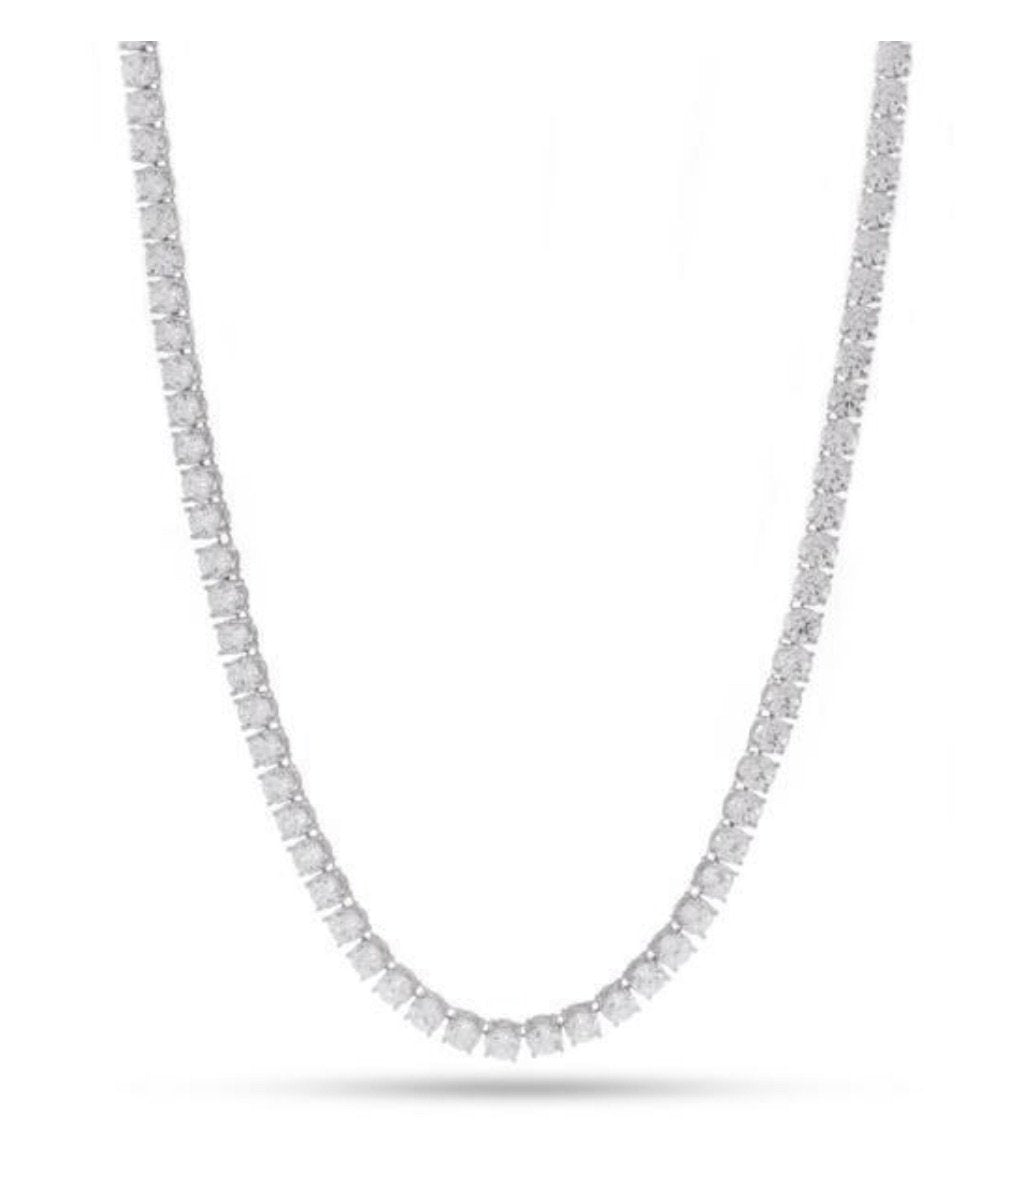 4mm, White Gold Single Row Tennis Necklace